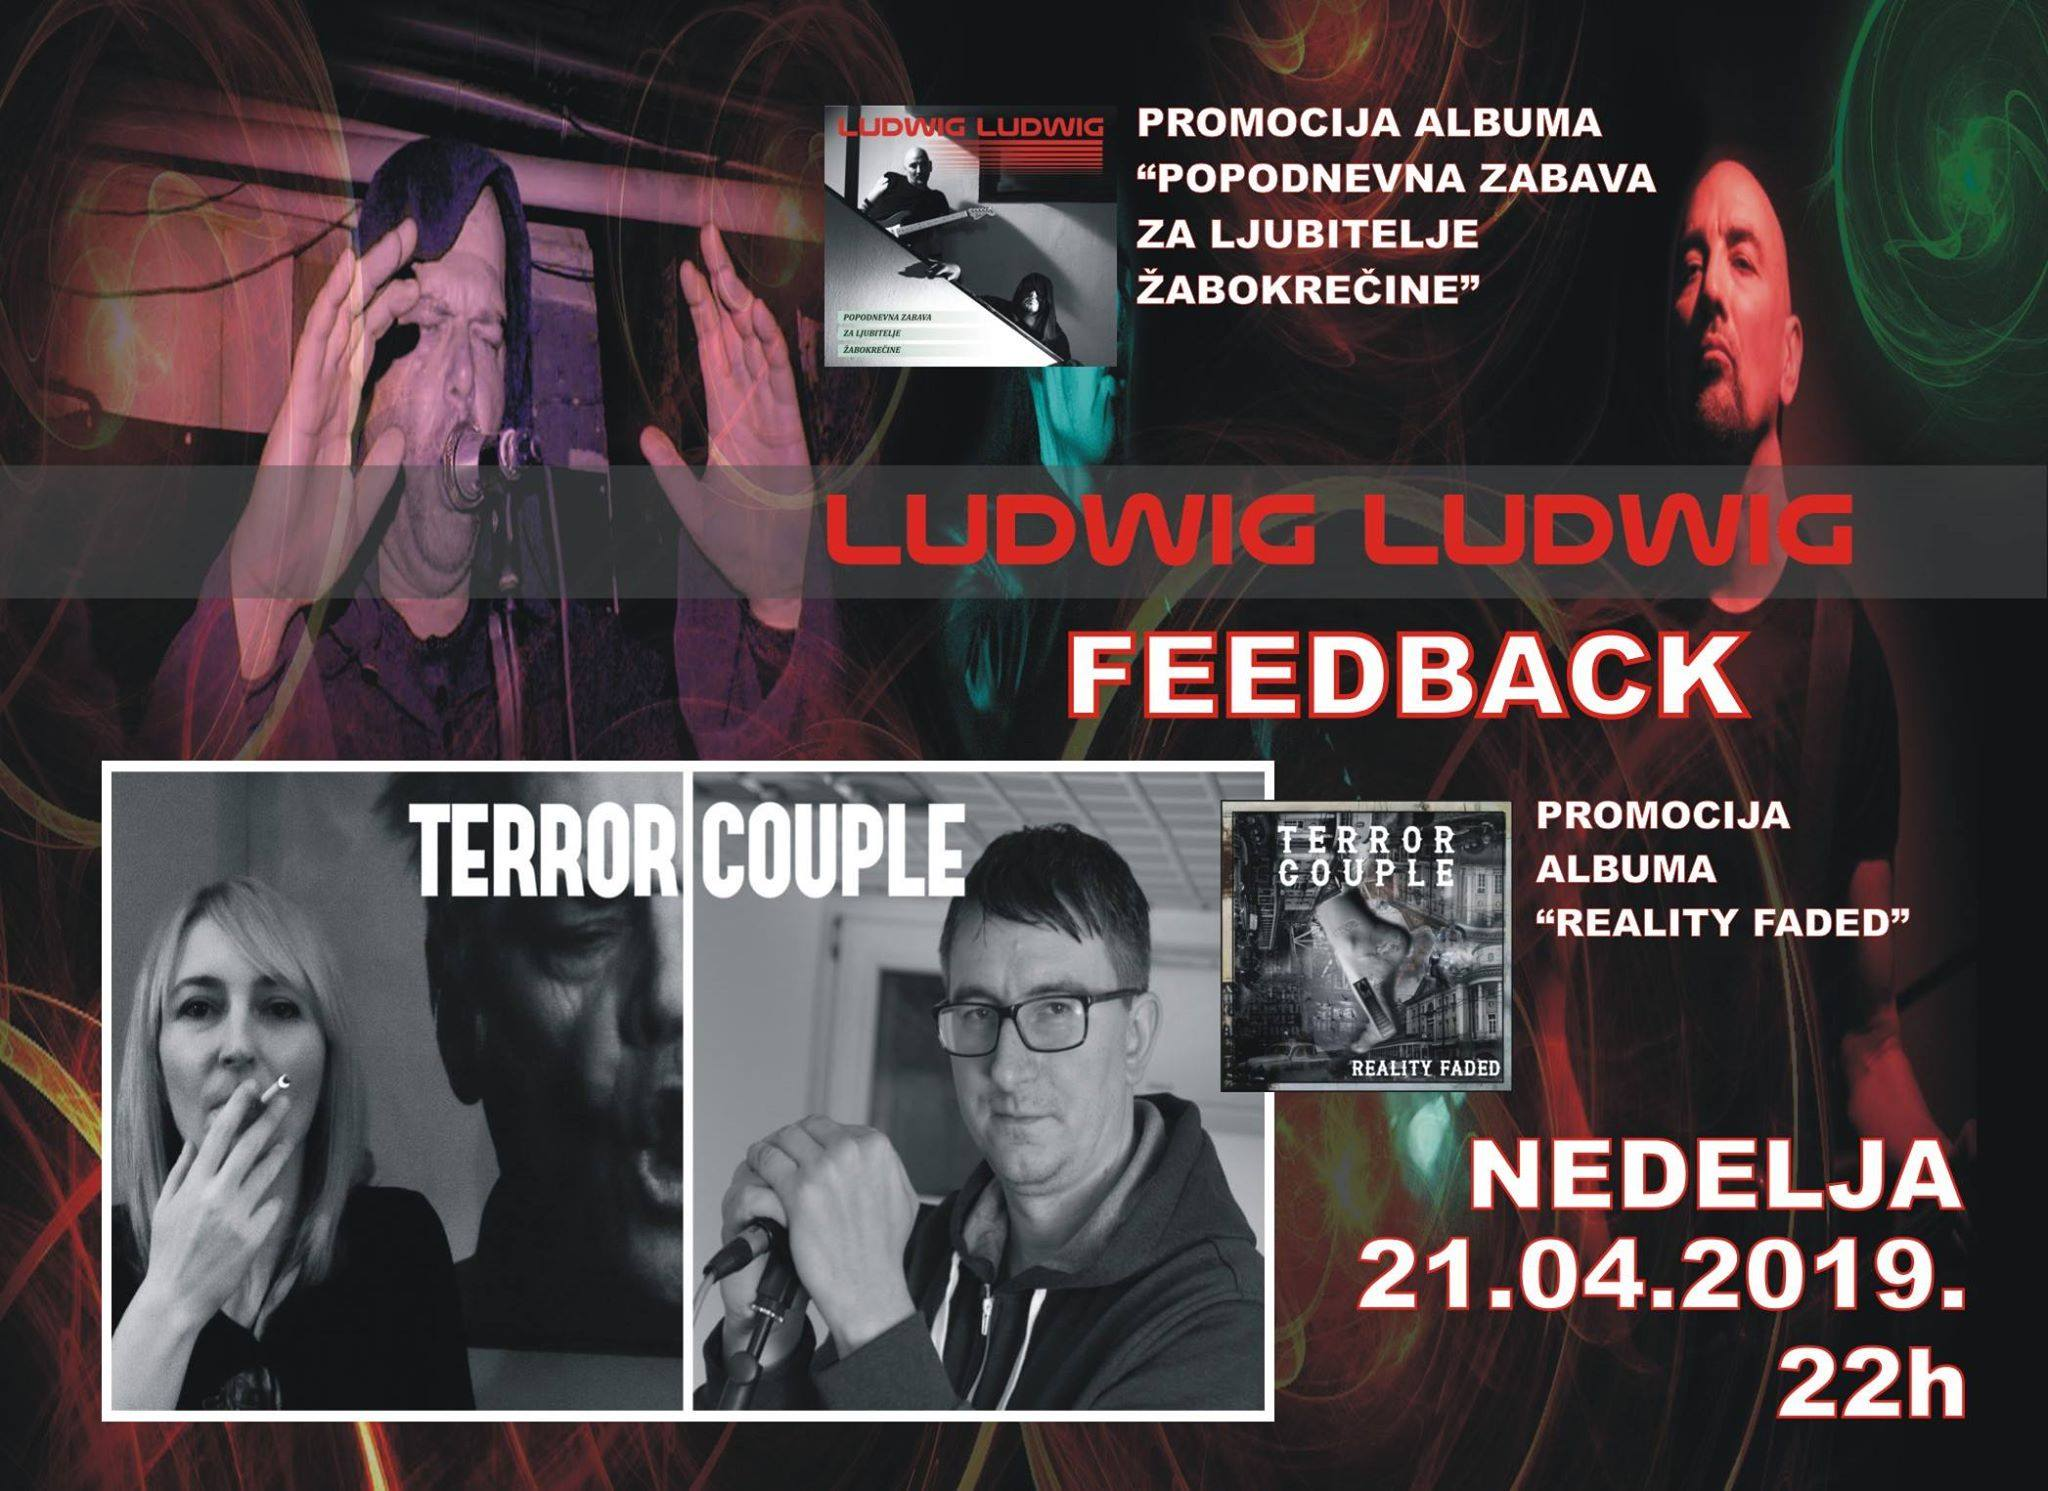 Terror couple - Ludwig Ludwig - 21. Apr - Feedback